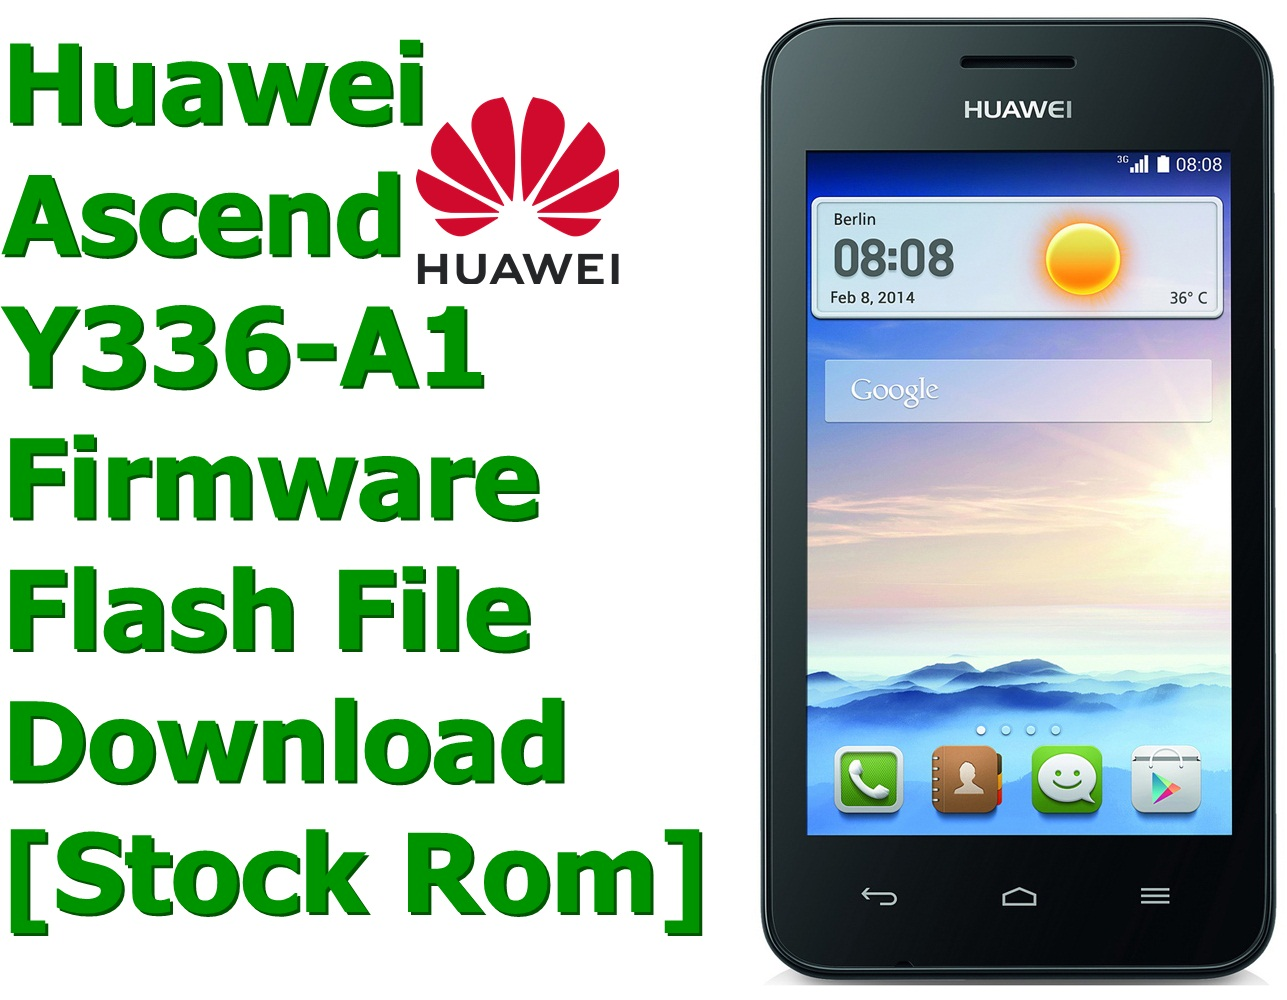 Huawei Ascend Y336-A1 Firmware Flash File Download [Stock Rom]